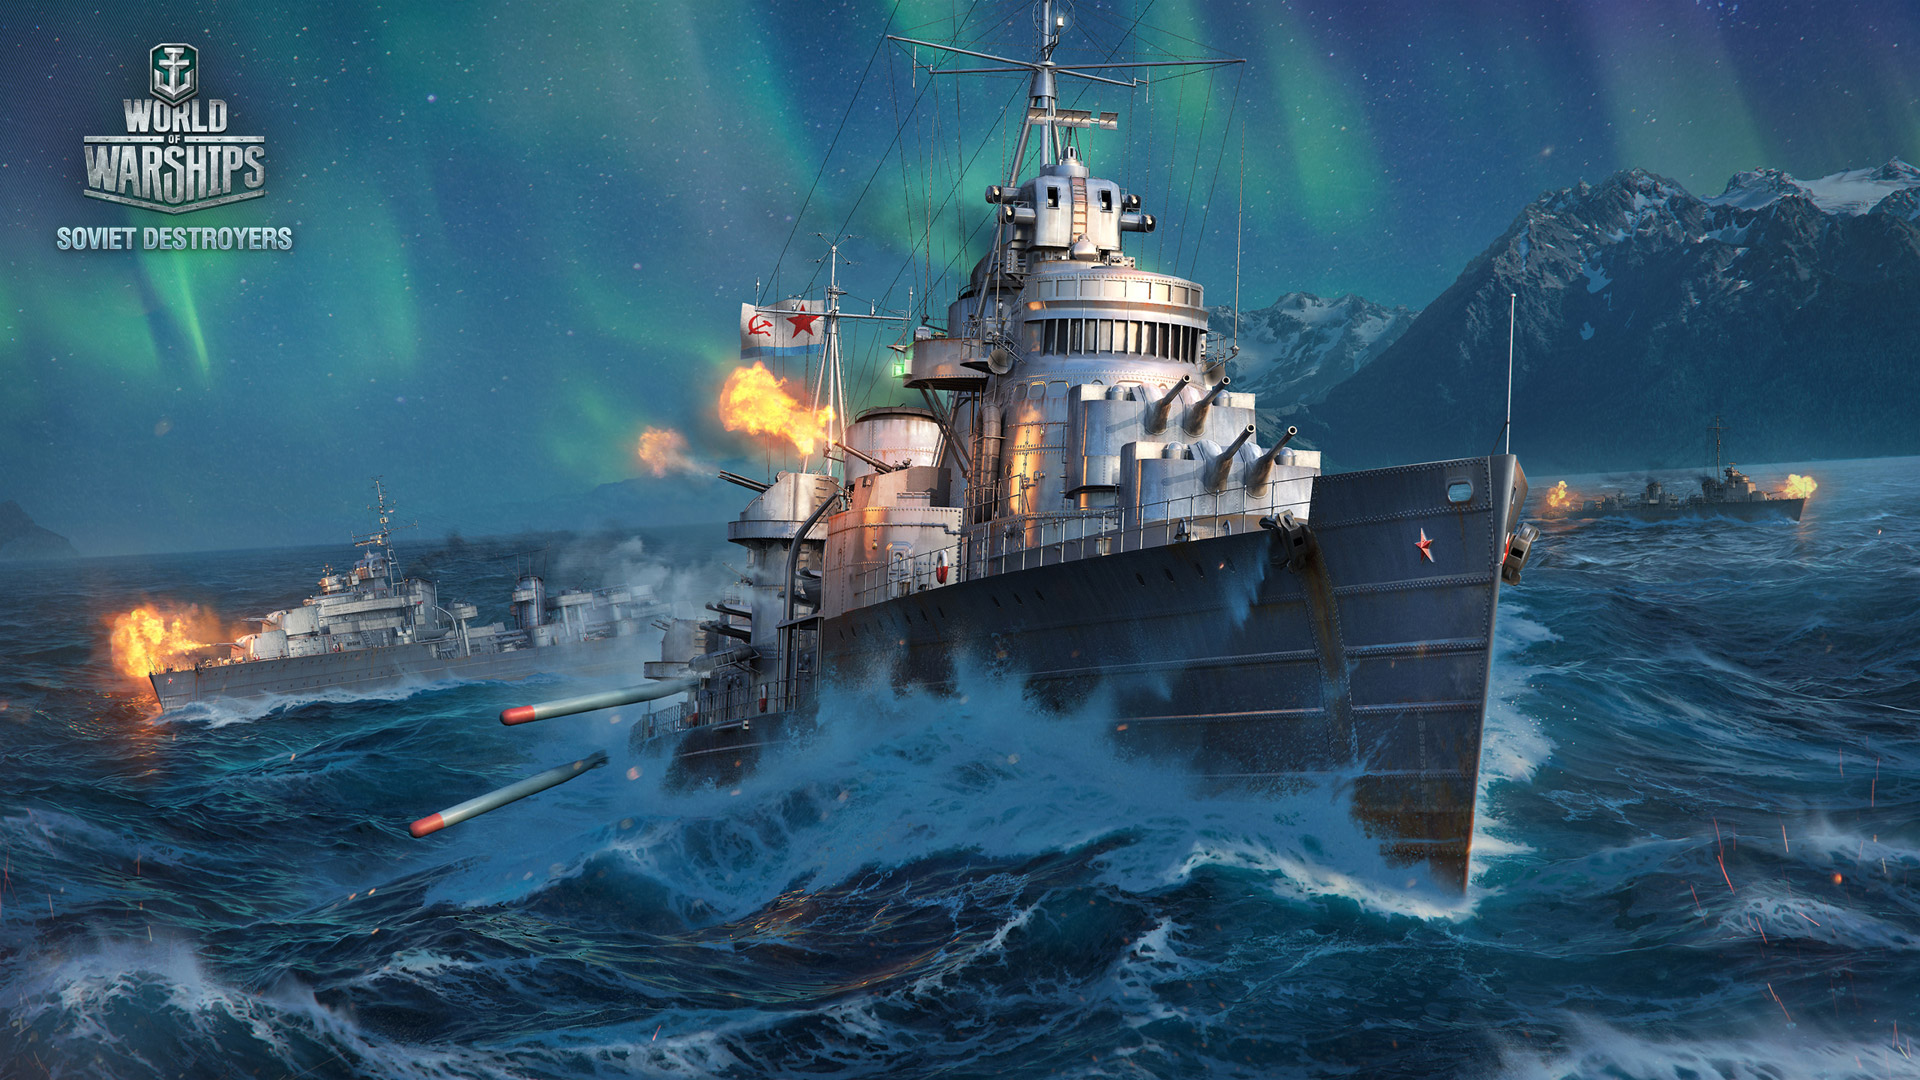 World of Warships Wallpaper in 1920x1080